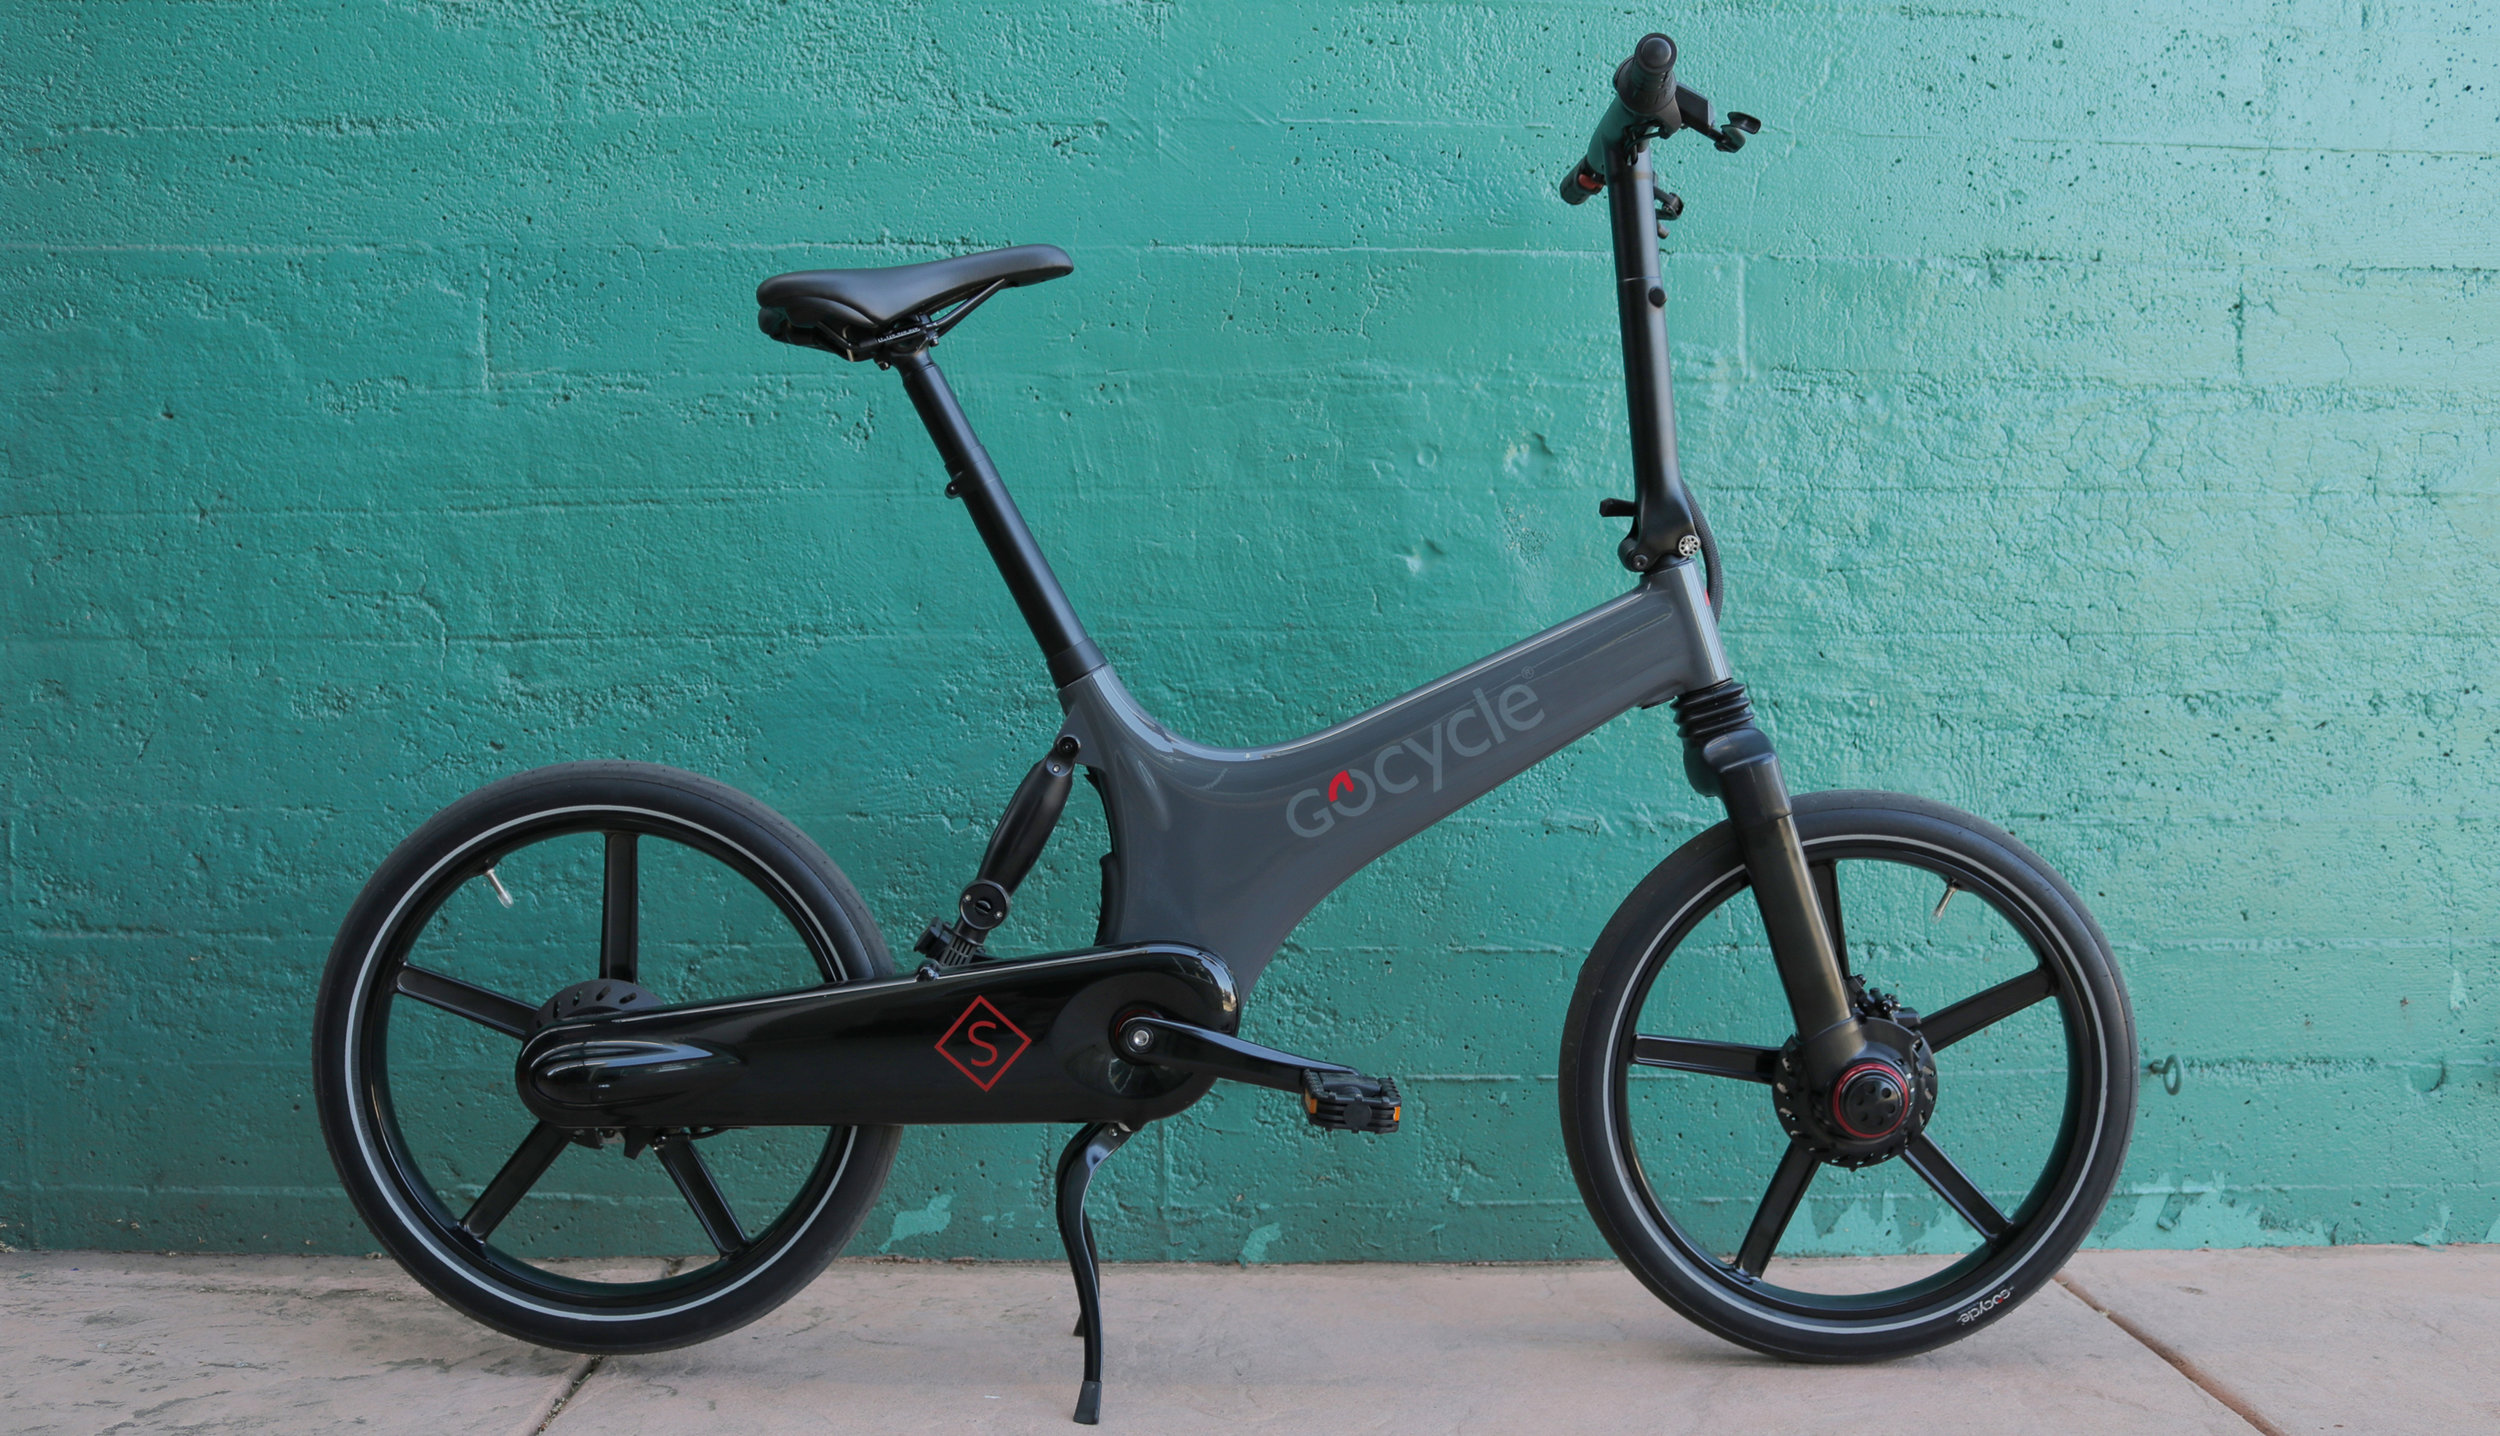 electrified-reviews-gocycle-gs-electric-bike-review-profile-right.jpg